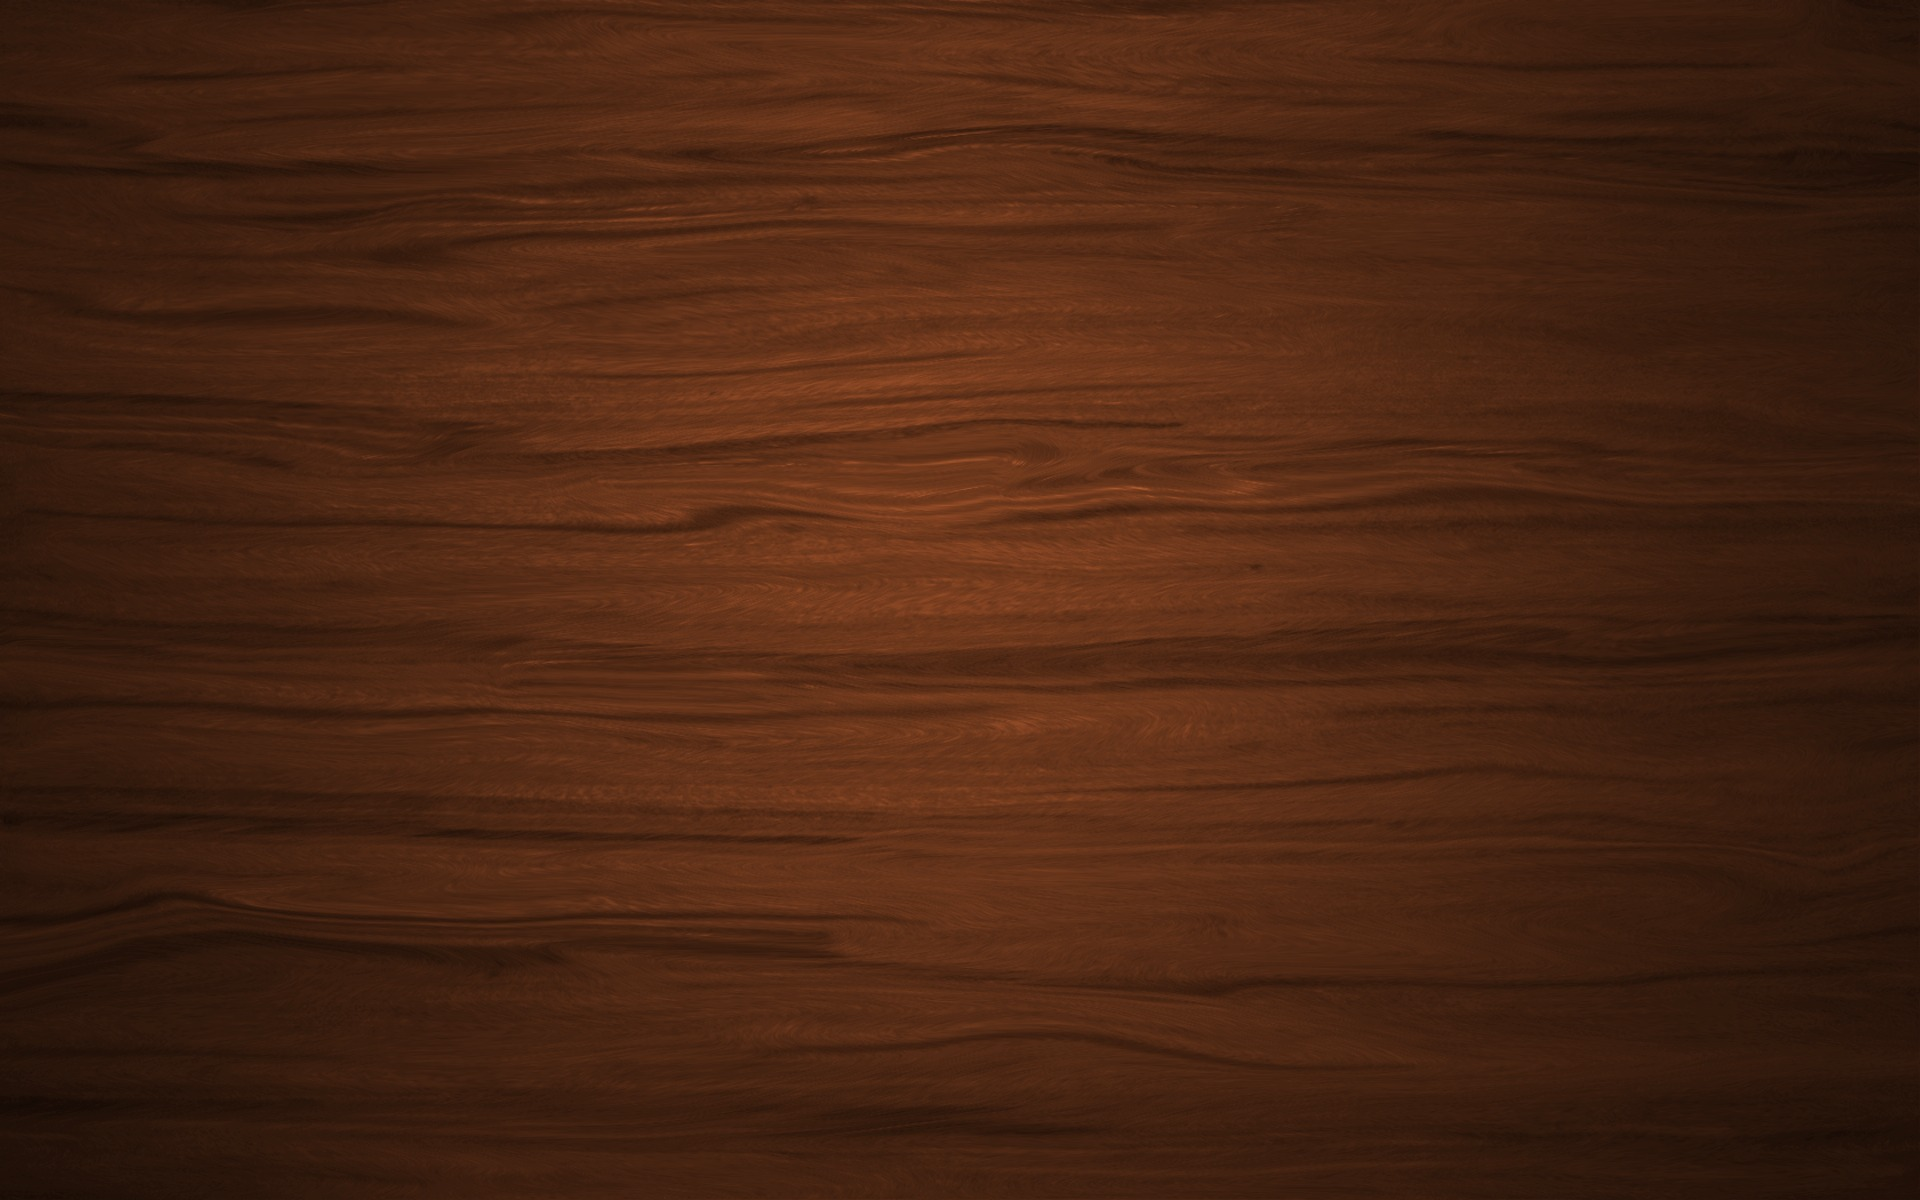 Wooden Textures for Designers (8)